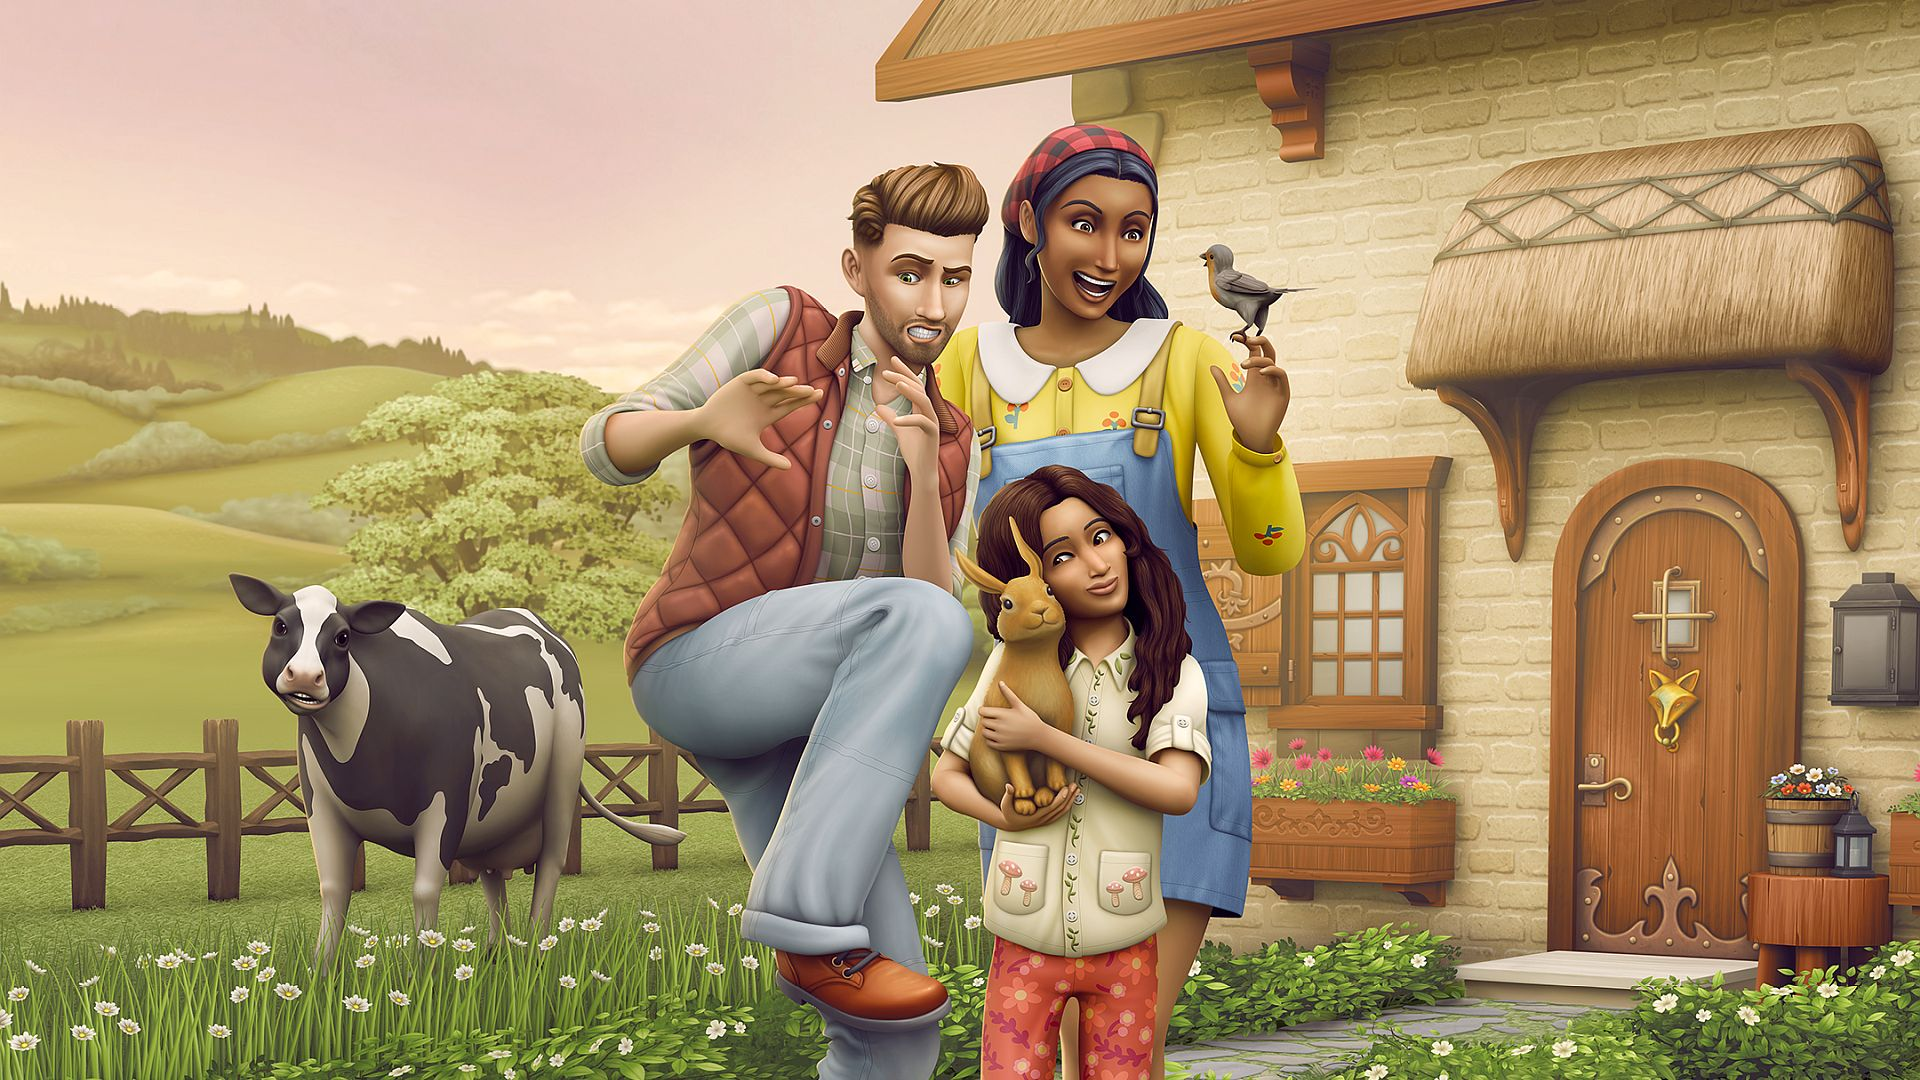 The Sims 4: Cottage Living is part Stardew Valley, part zoophile fantasy